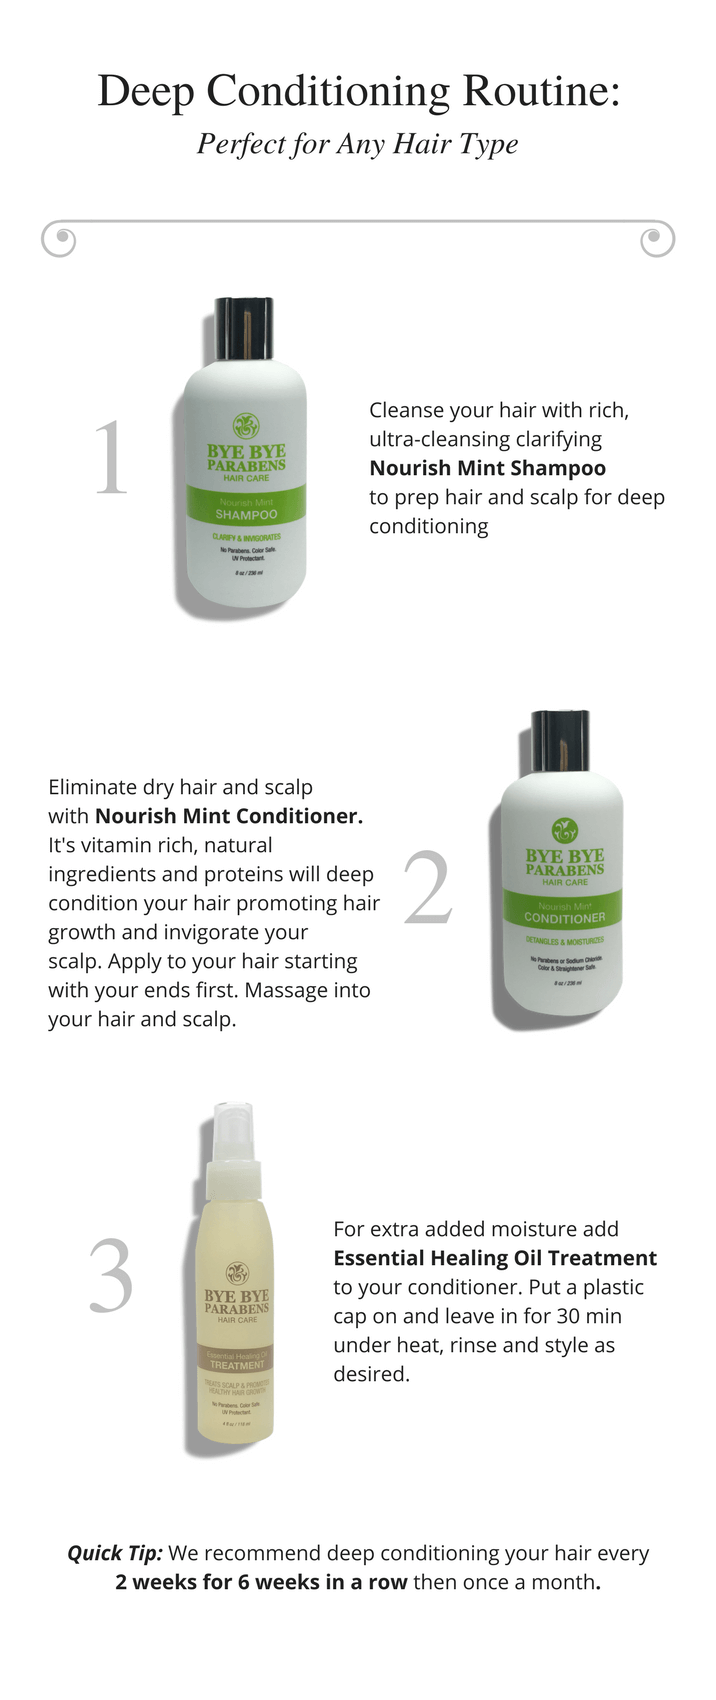 Deep Conditioning Hair Care Routine